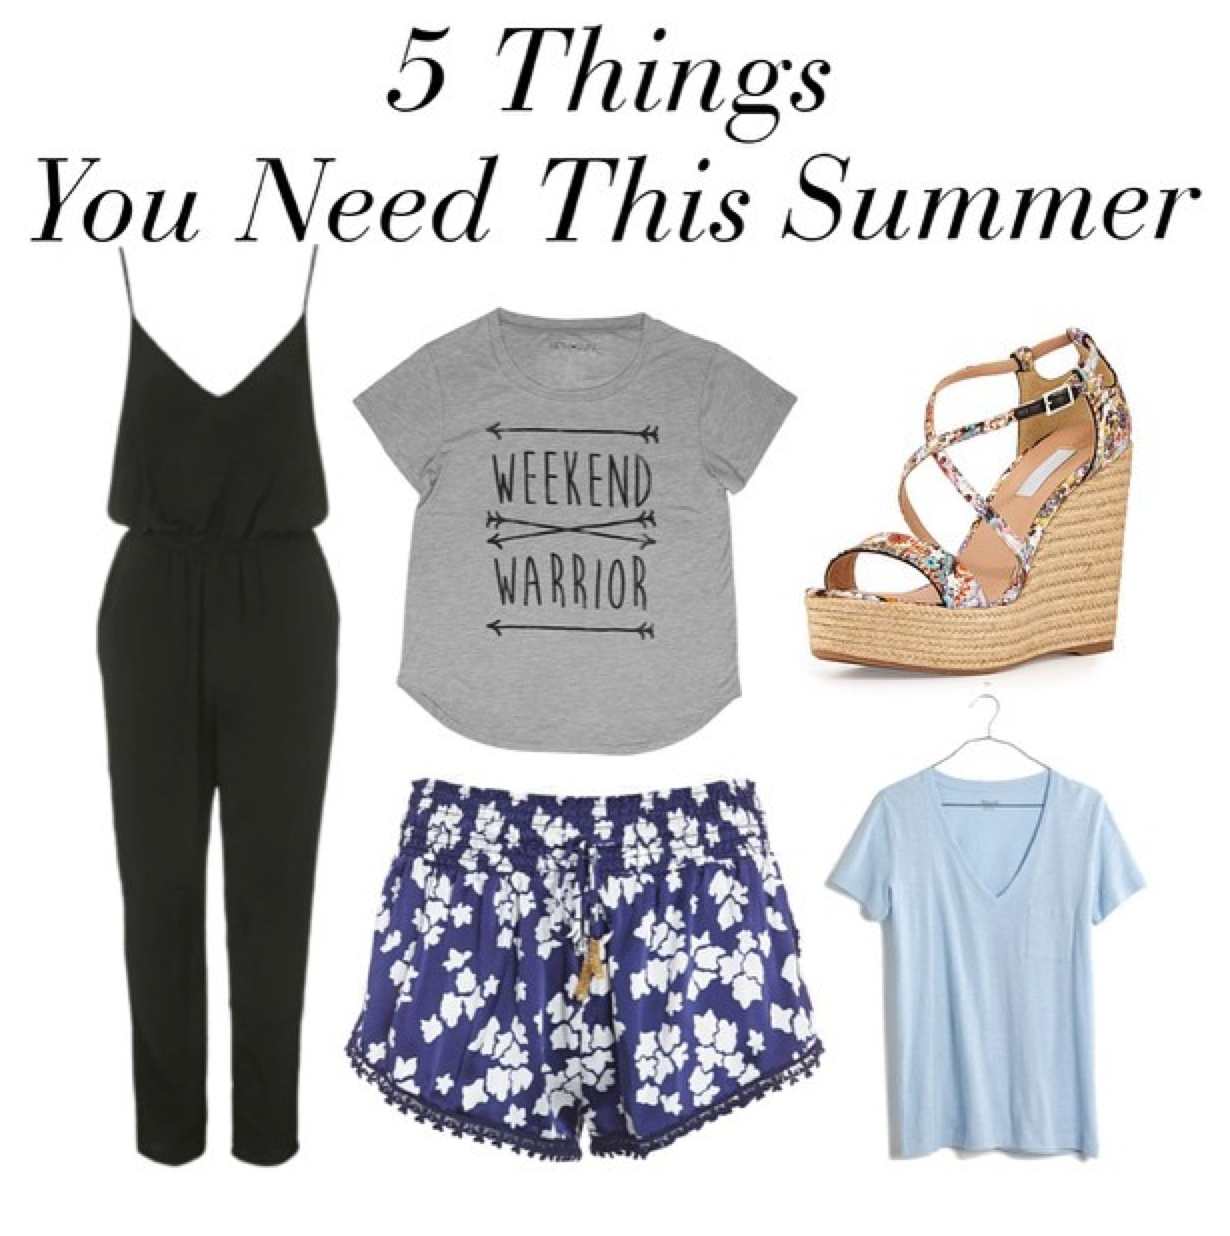 Fashion Advice: 5 Things You Need for Summer